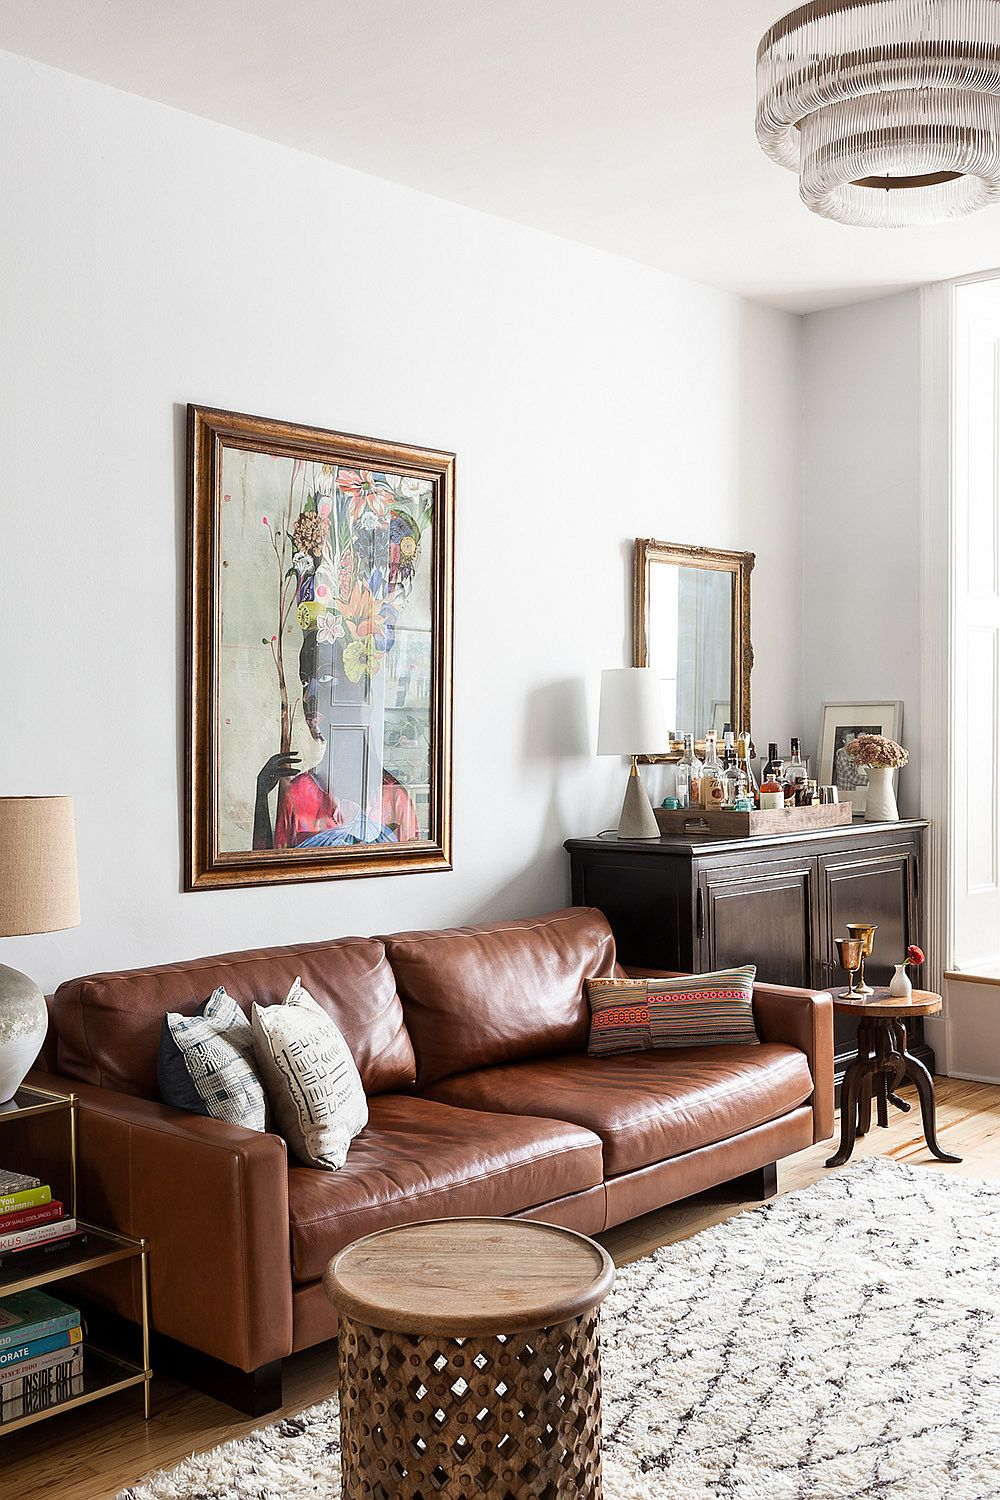 Moving around smaller decor pieces and accessories in the living room can create a whole new visual